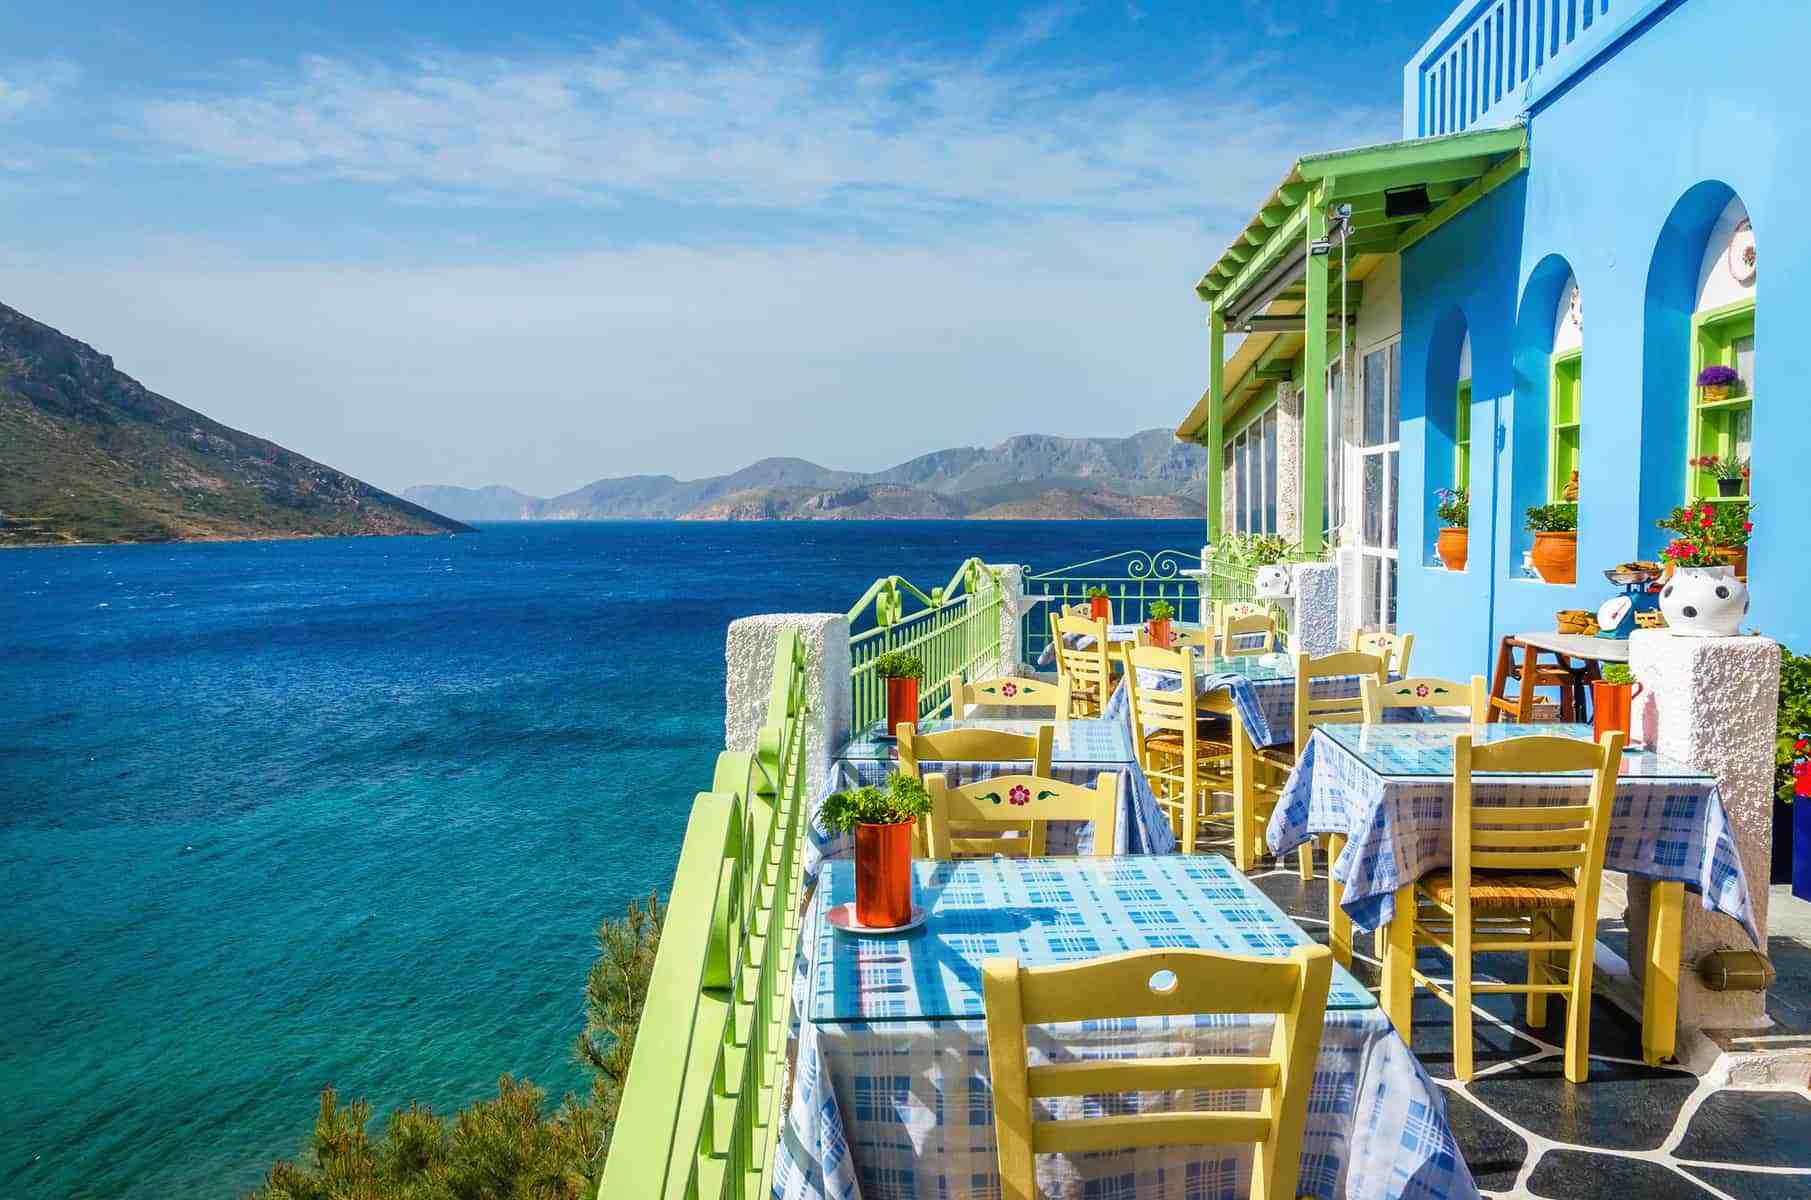 Typical Greek restaurant on the balcony blue building overlooking the sea, Greece